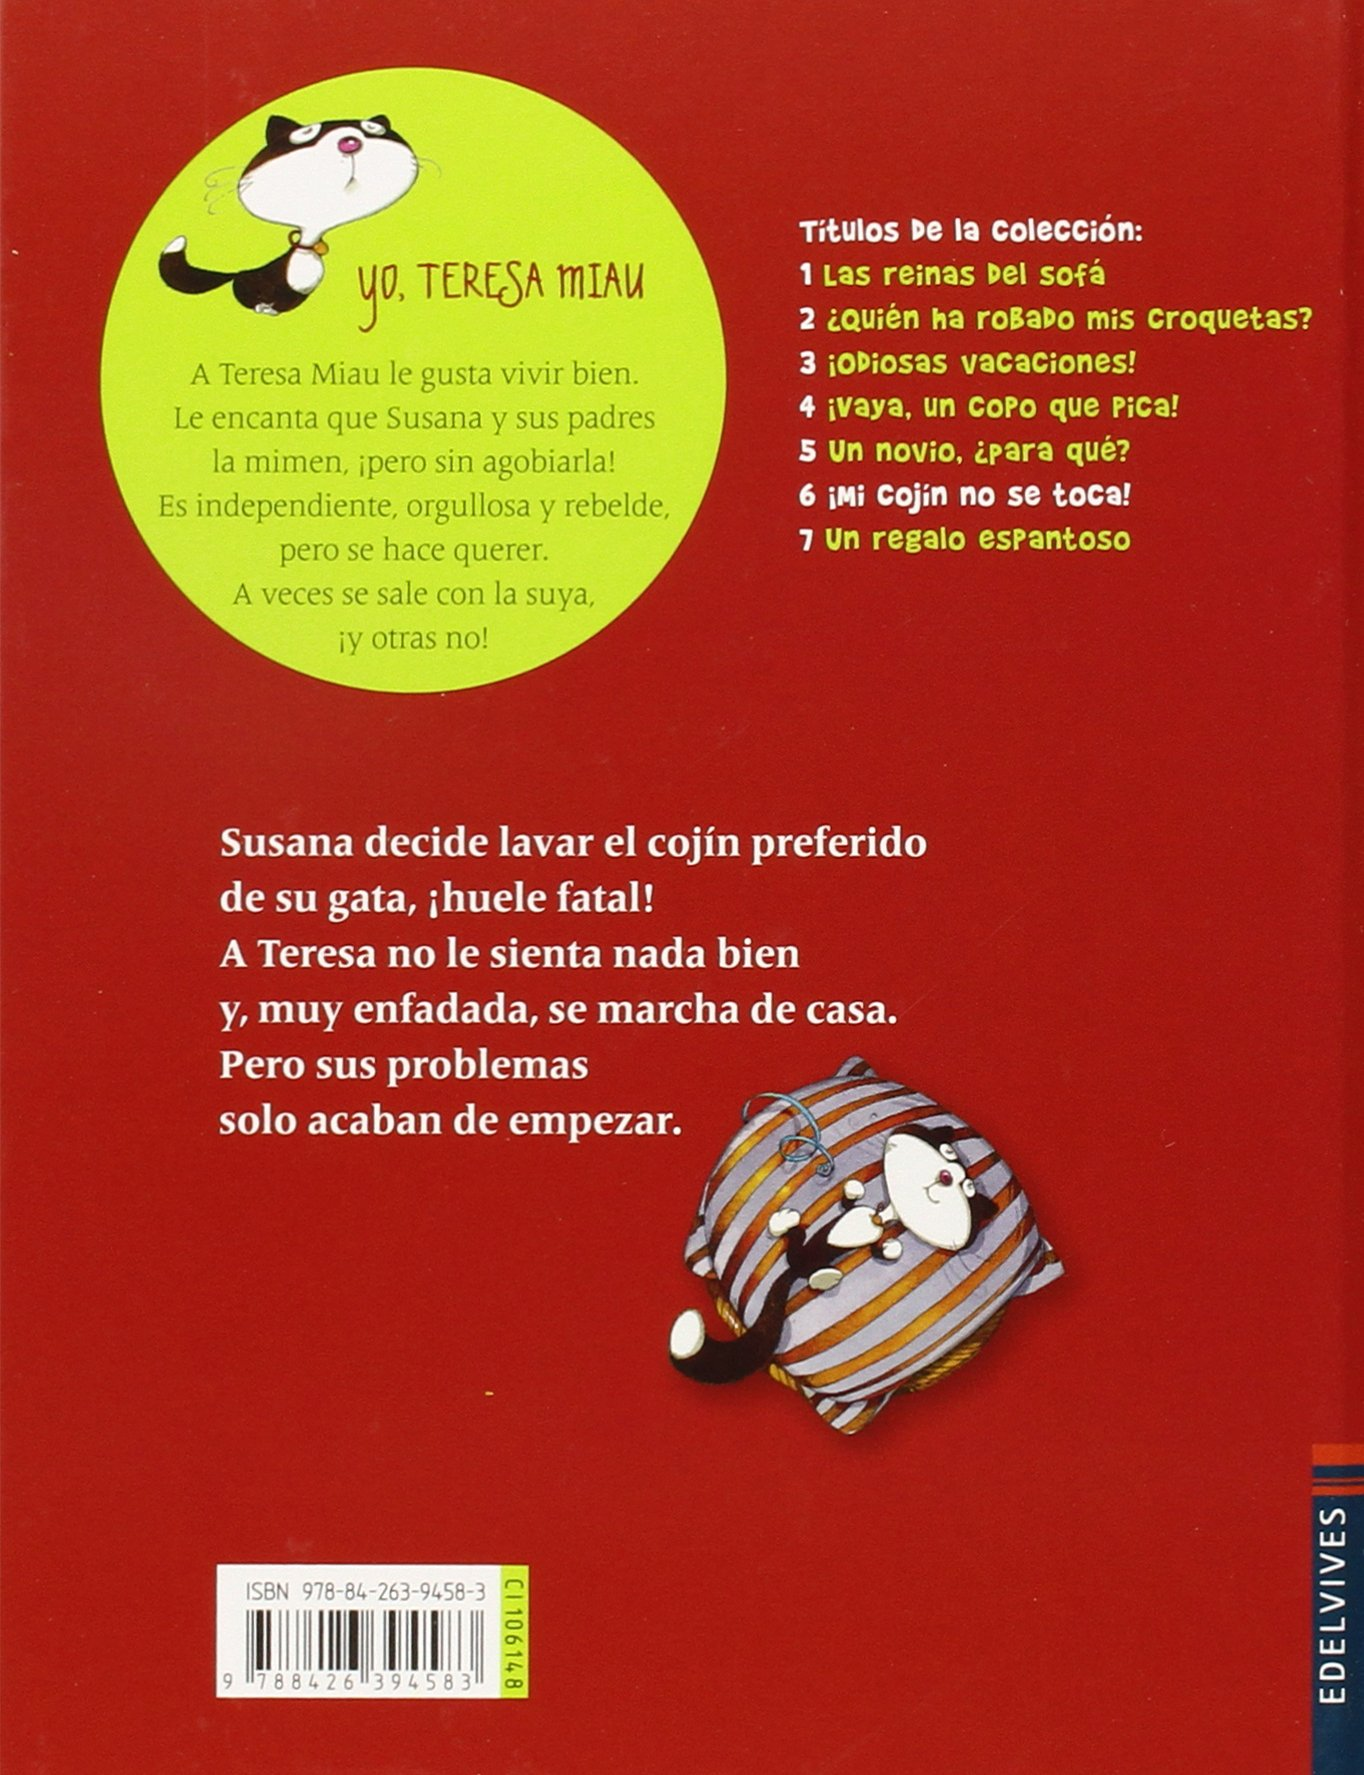 ¡Mi cojín no se toca!: Gérard Moncomble: 9788426394583: Amazon.com: Books